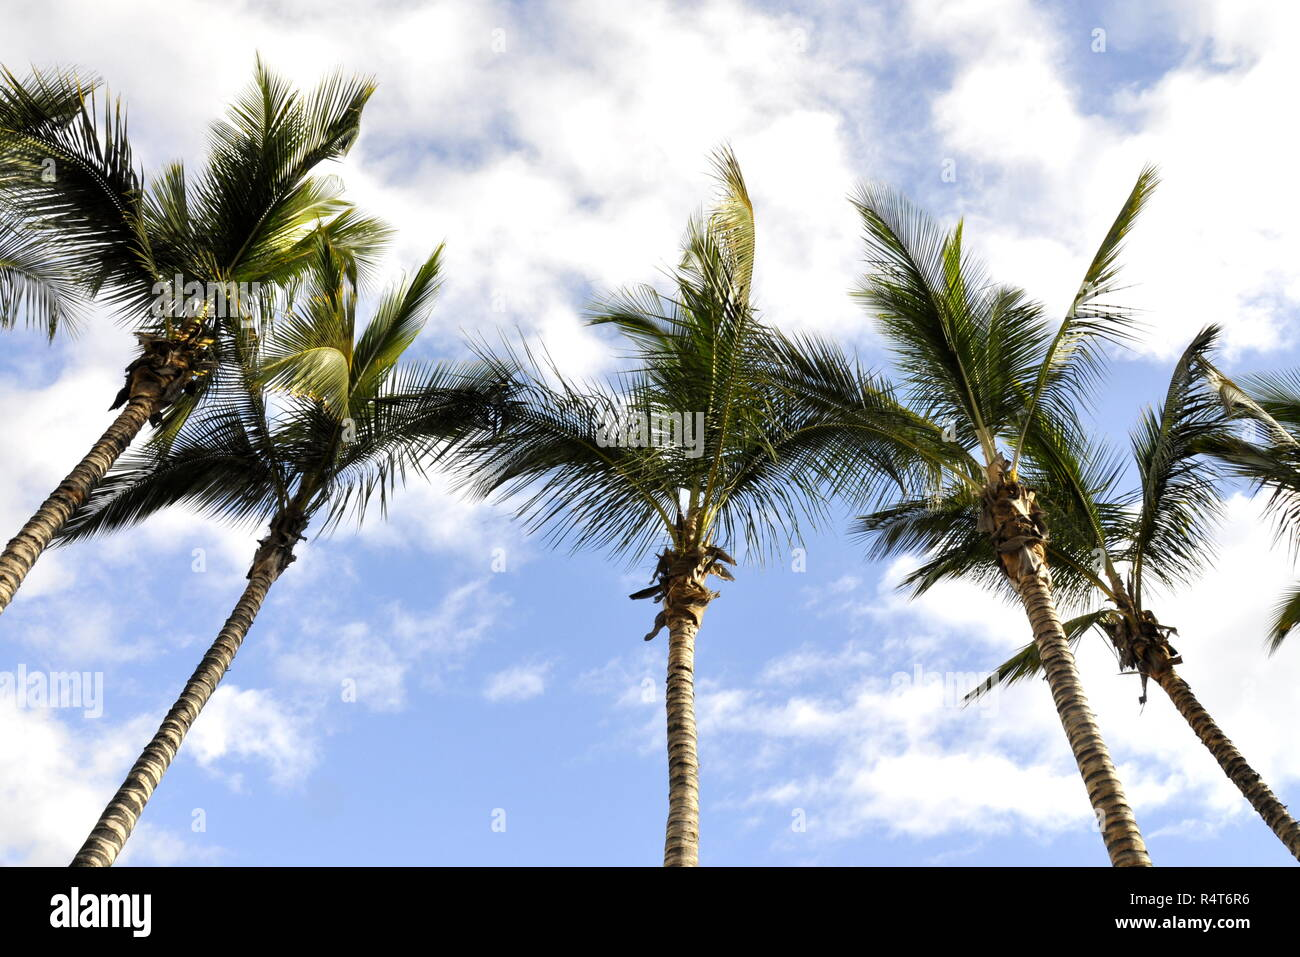 Palm trees against partly cloudy sky - Stock Image